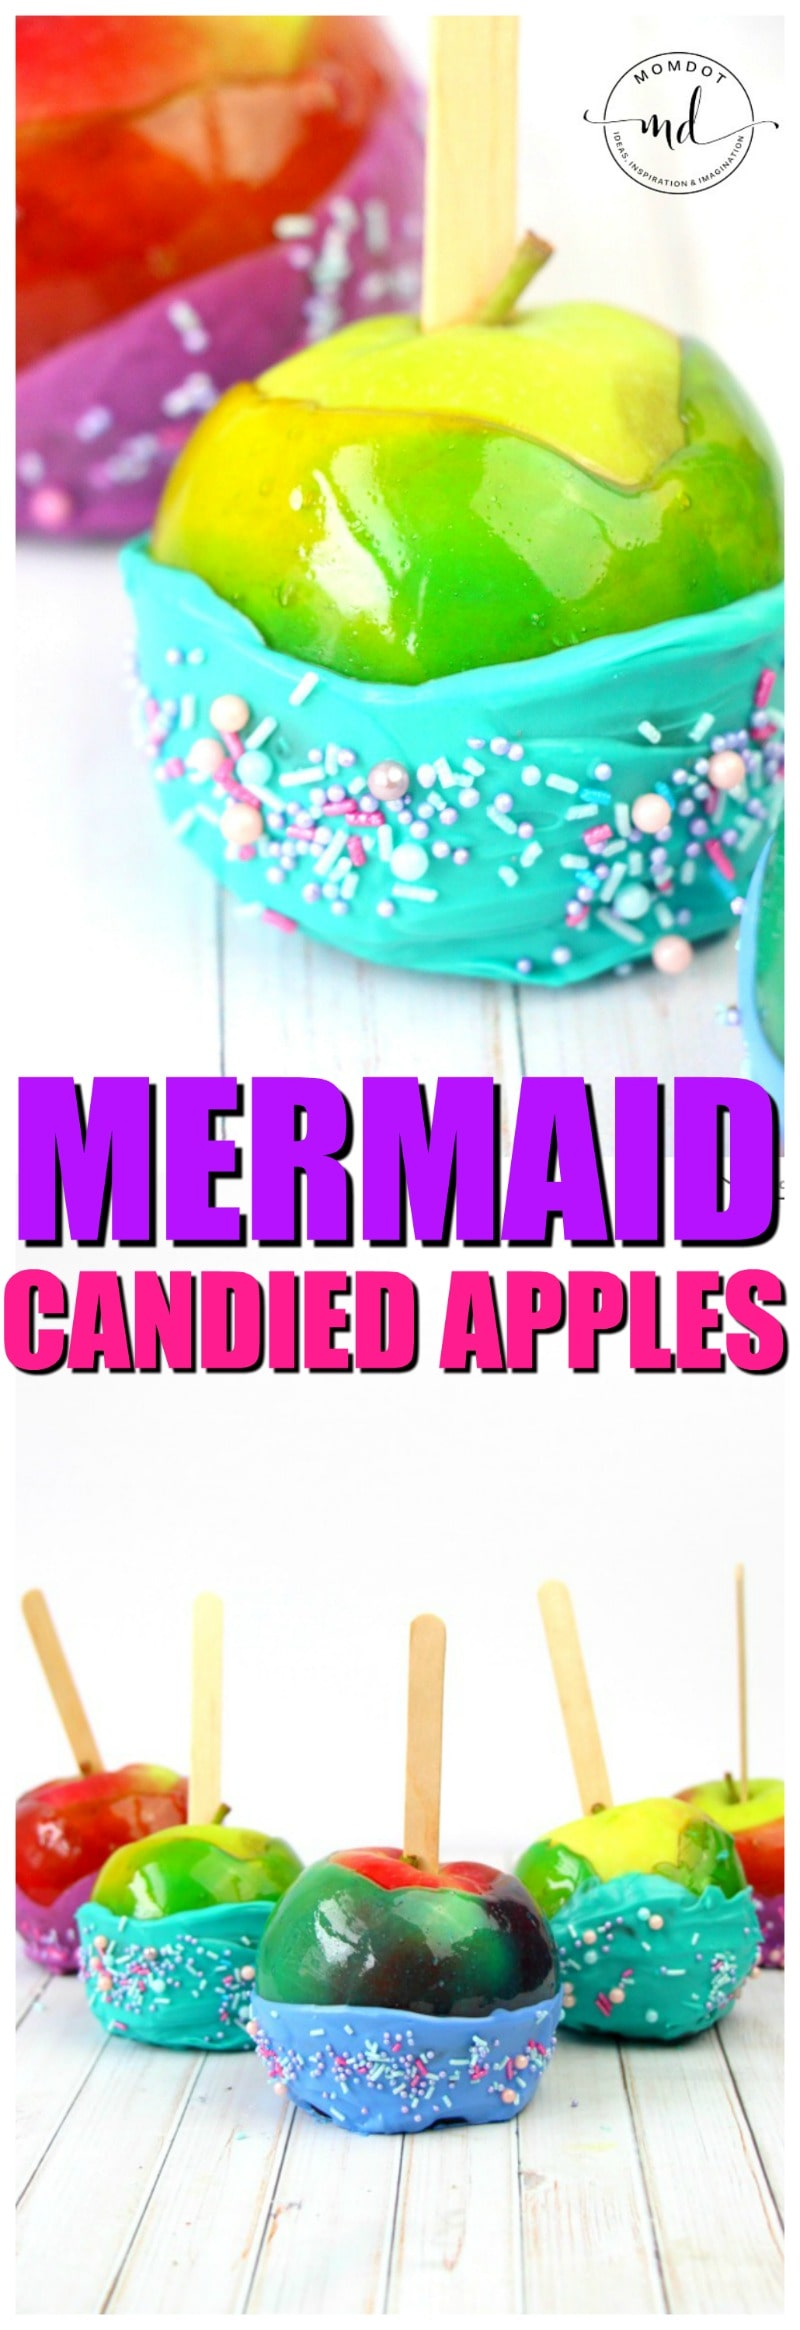 mermaid candied apples